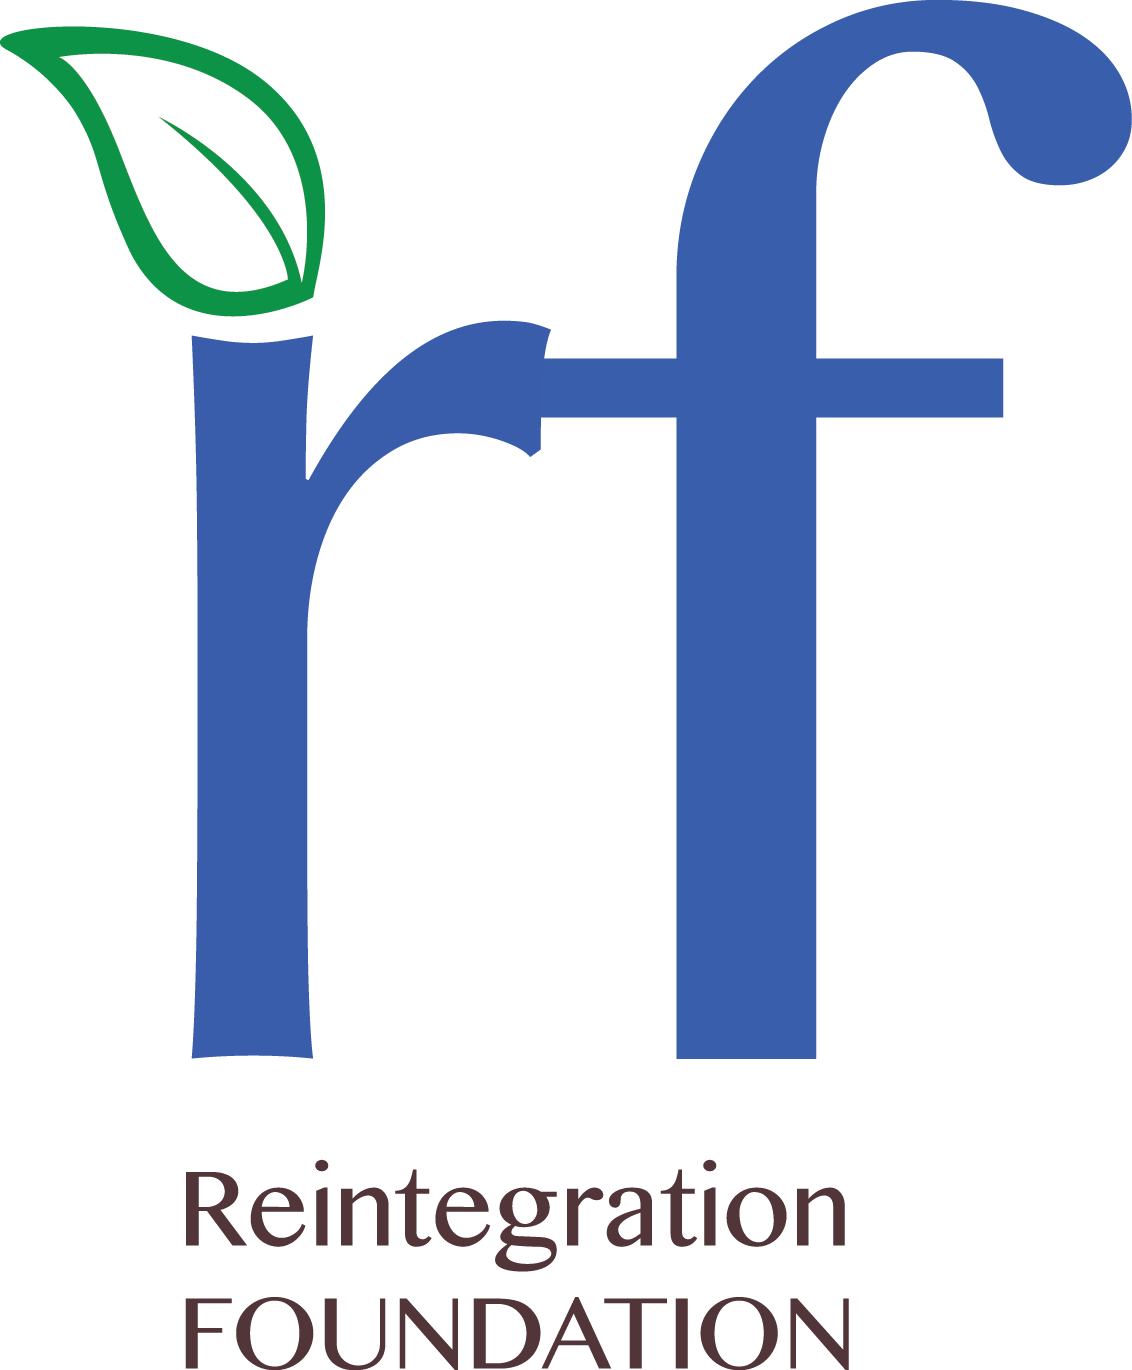 reintegration foundation